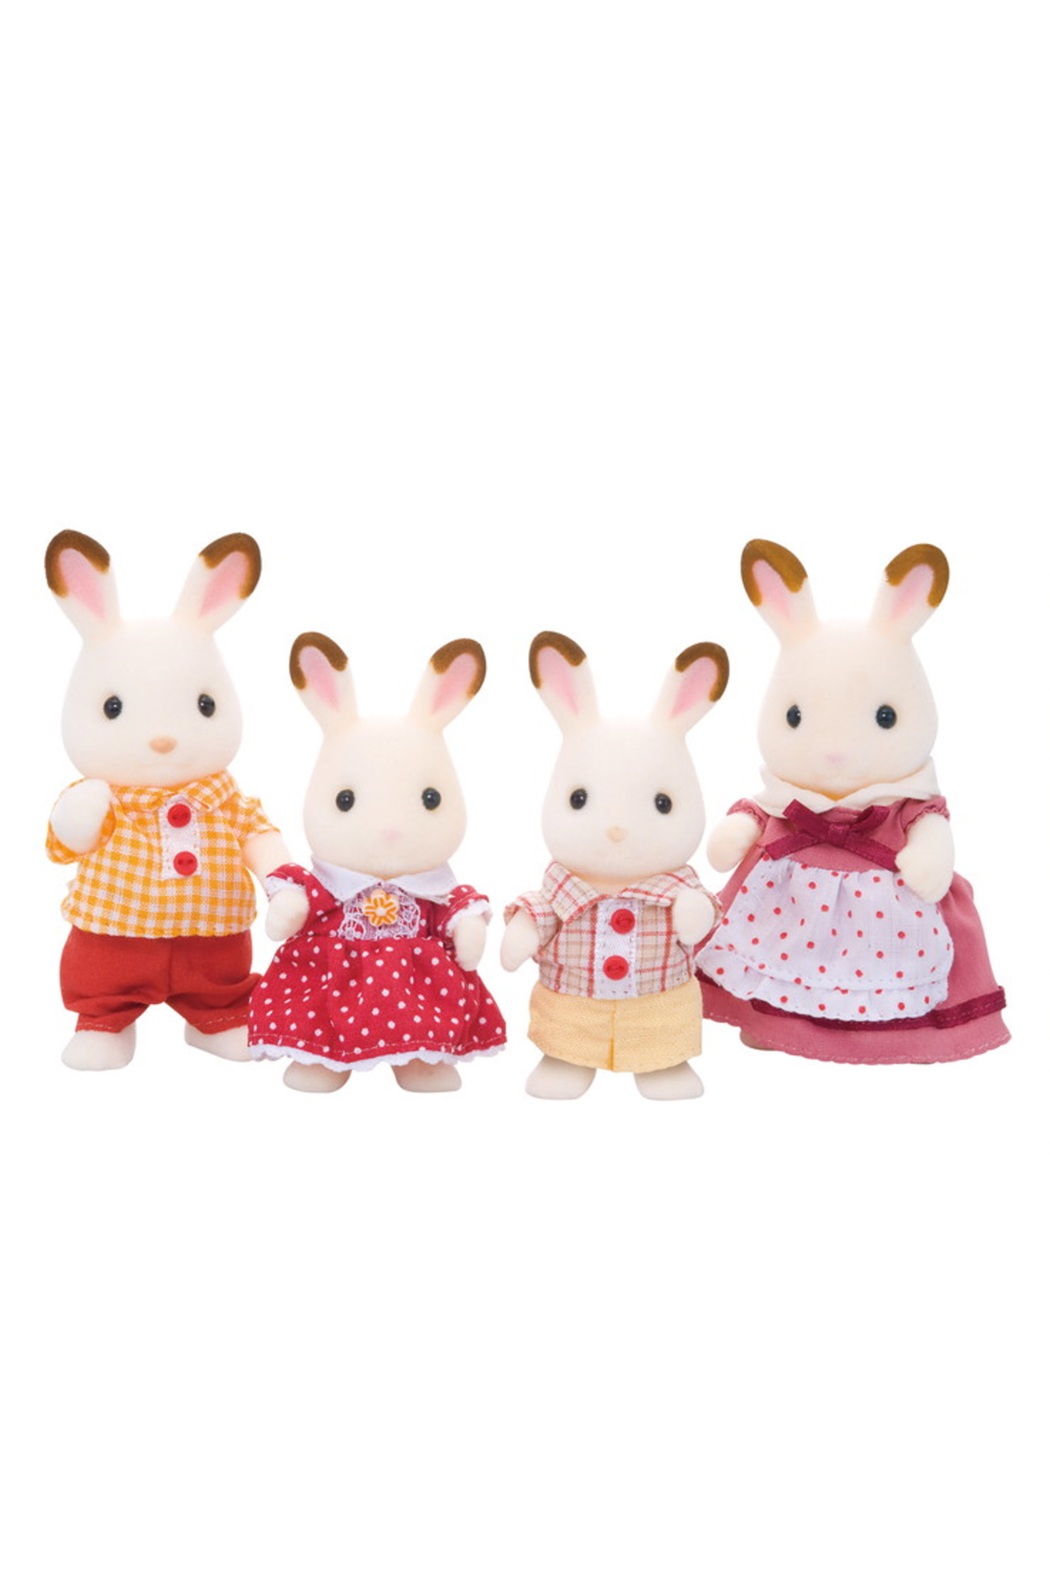 Calico Critters Hopscotch Rabbit Family - Main Image